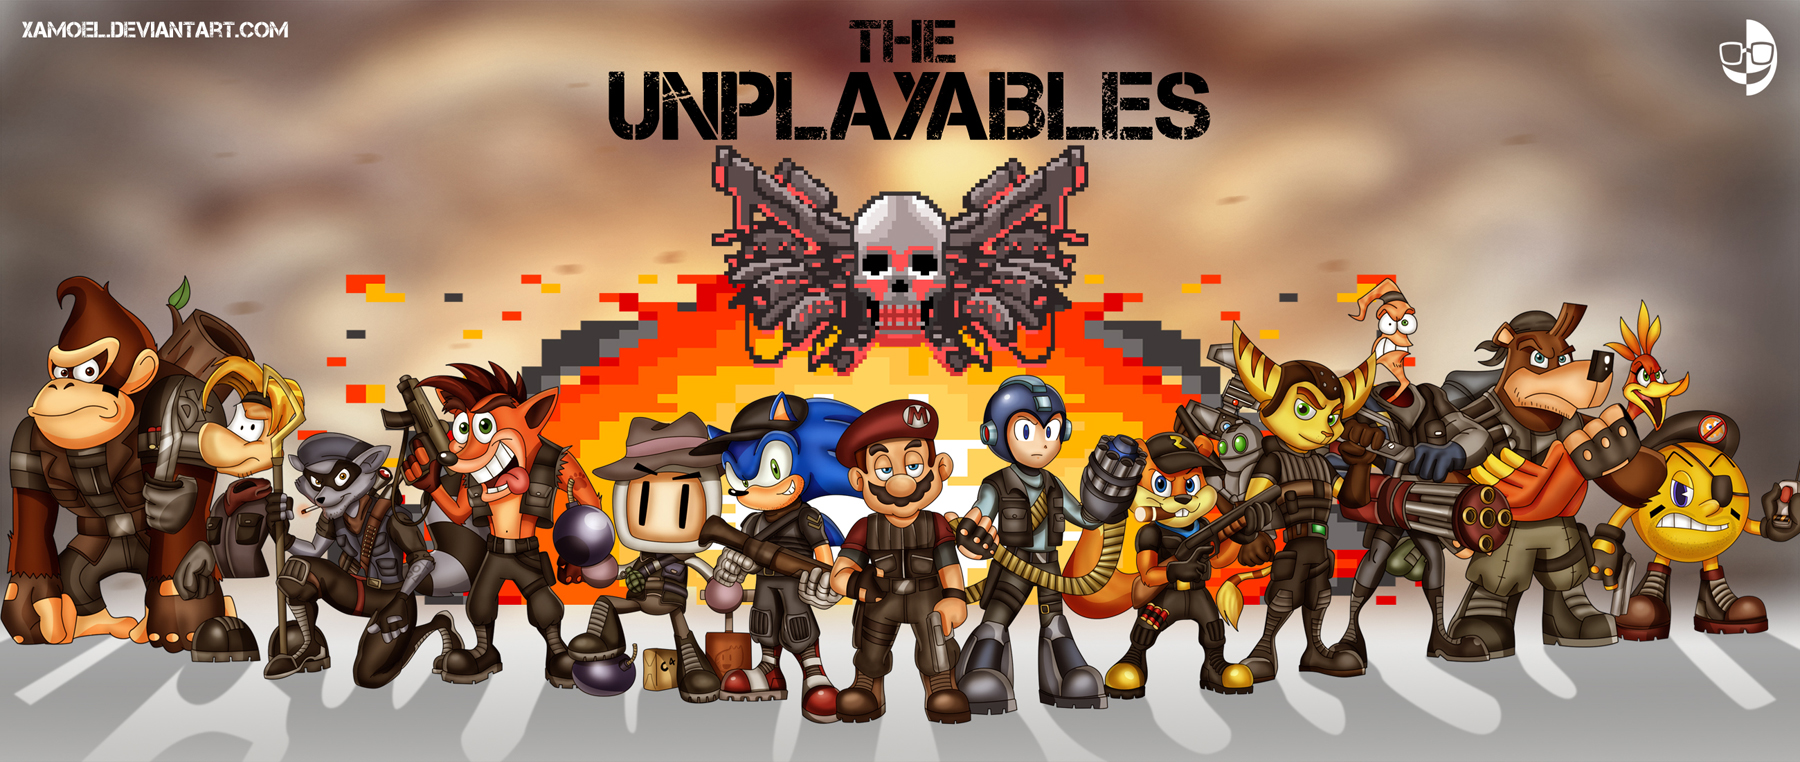 THE UNPLAYABLES by XAMOEL